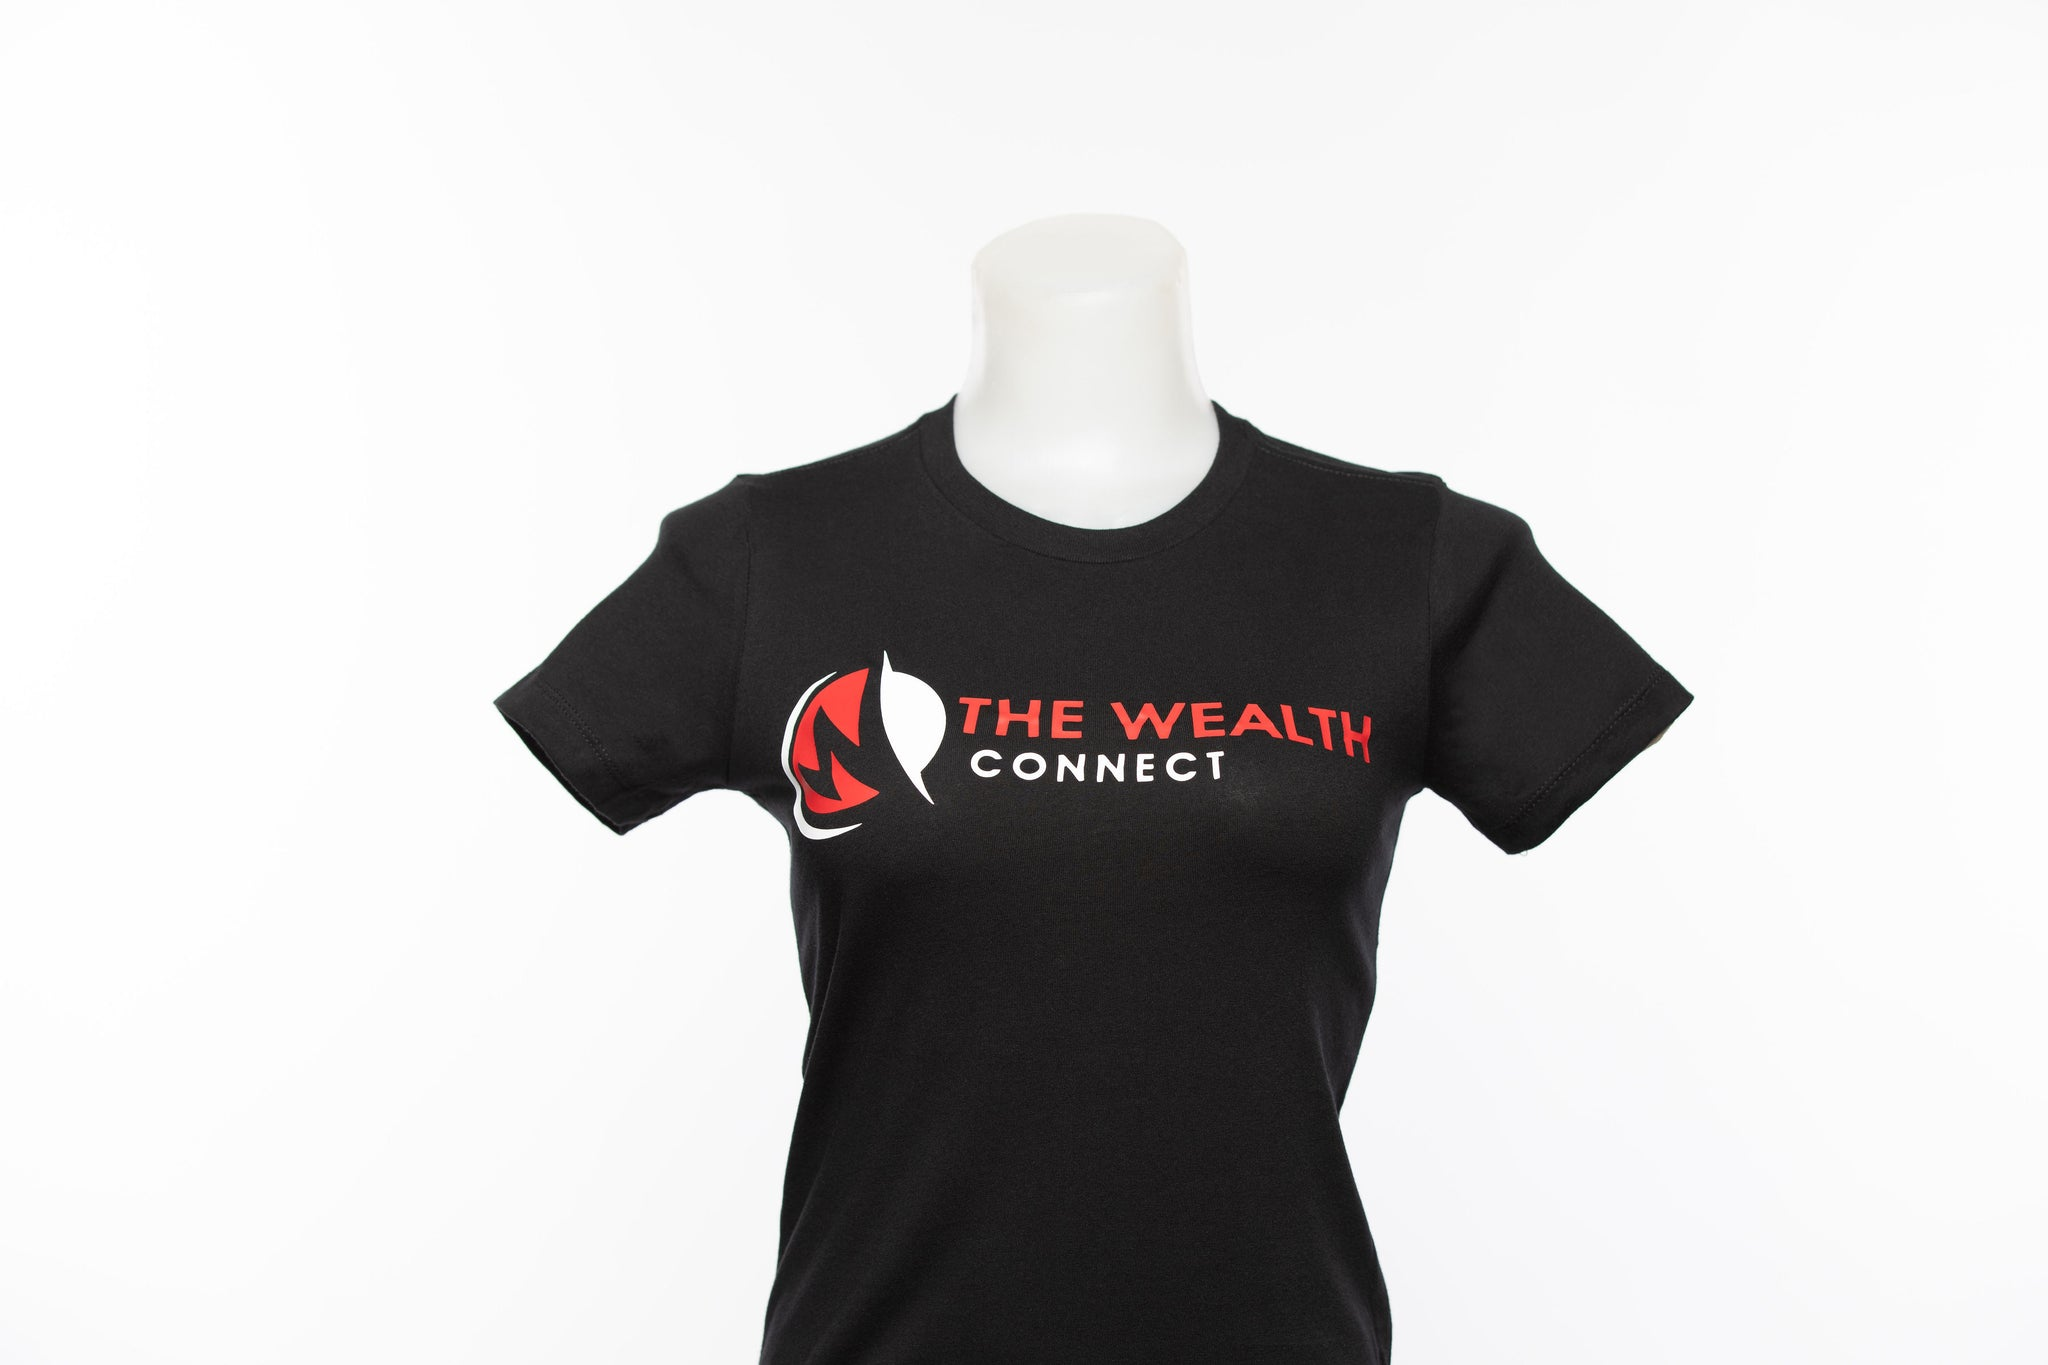 The Wealth Connect - Black T-Shirt